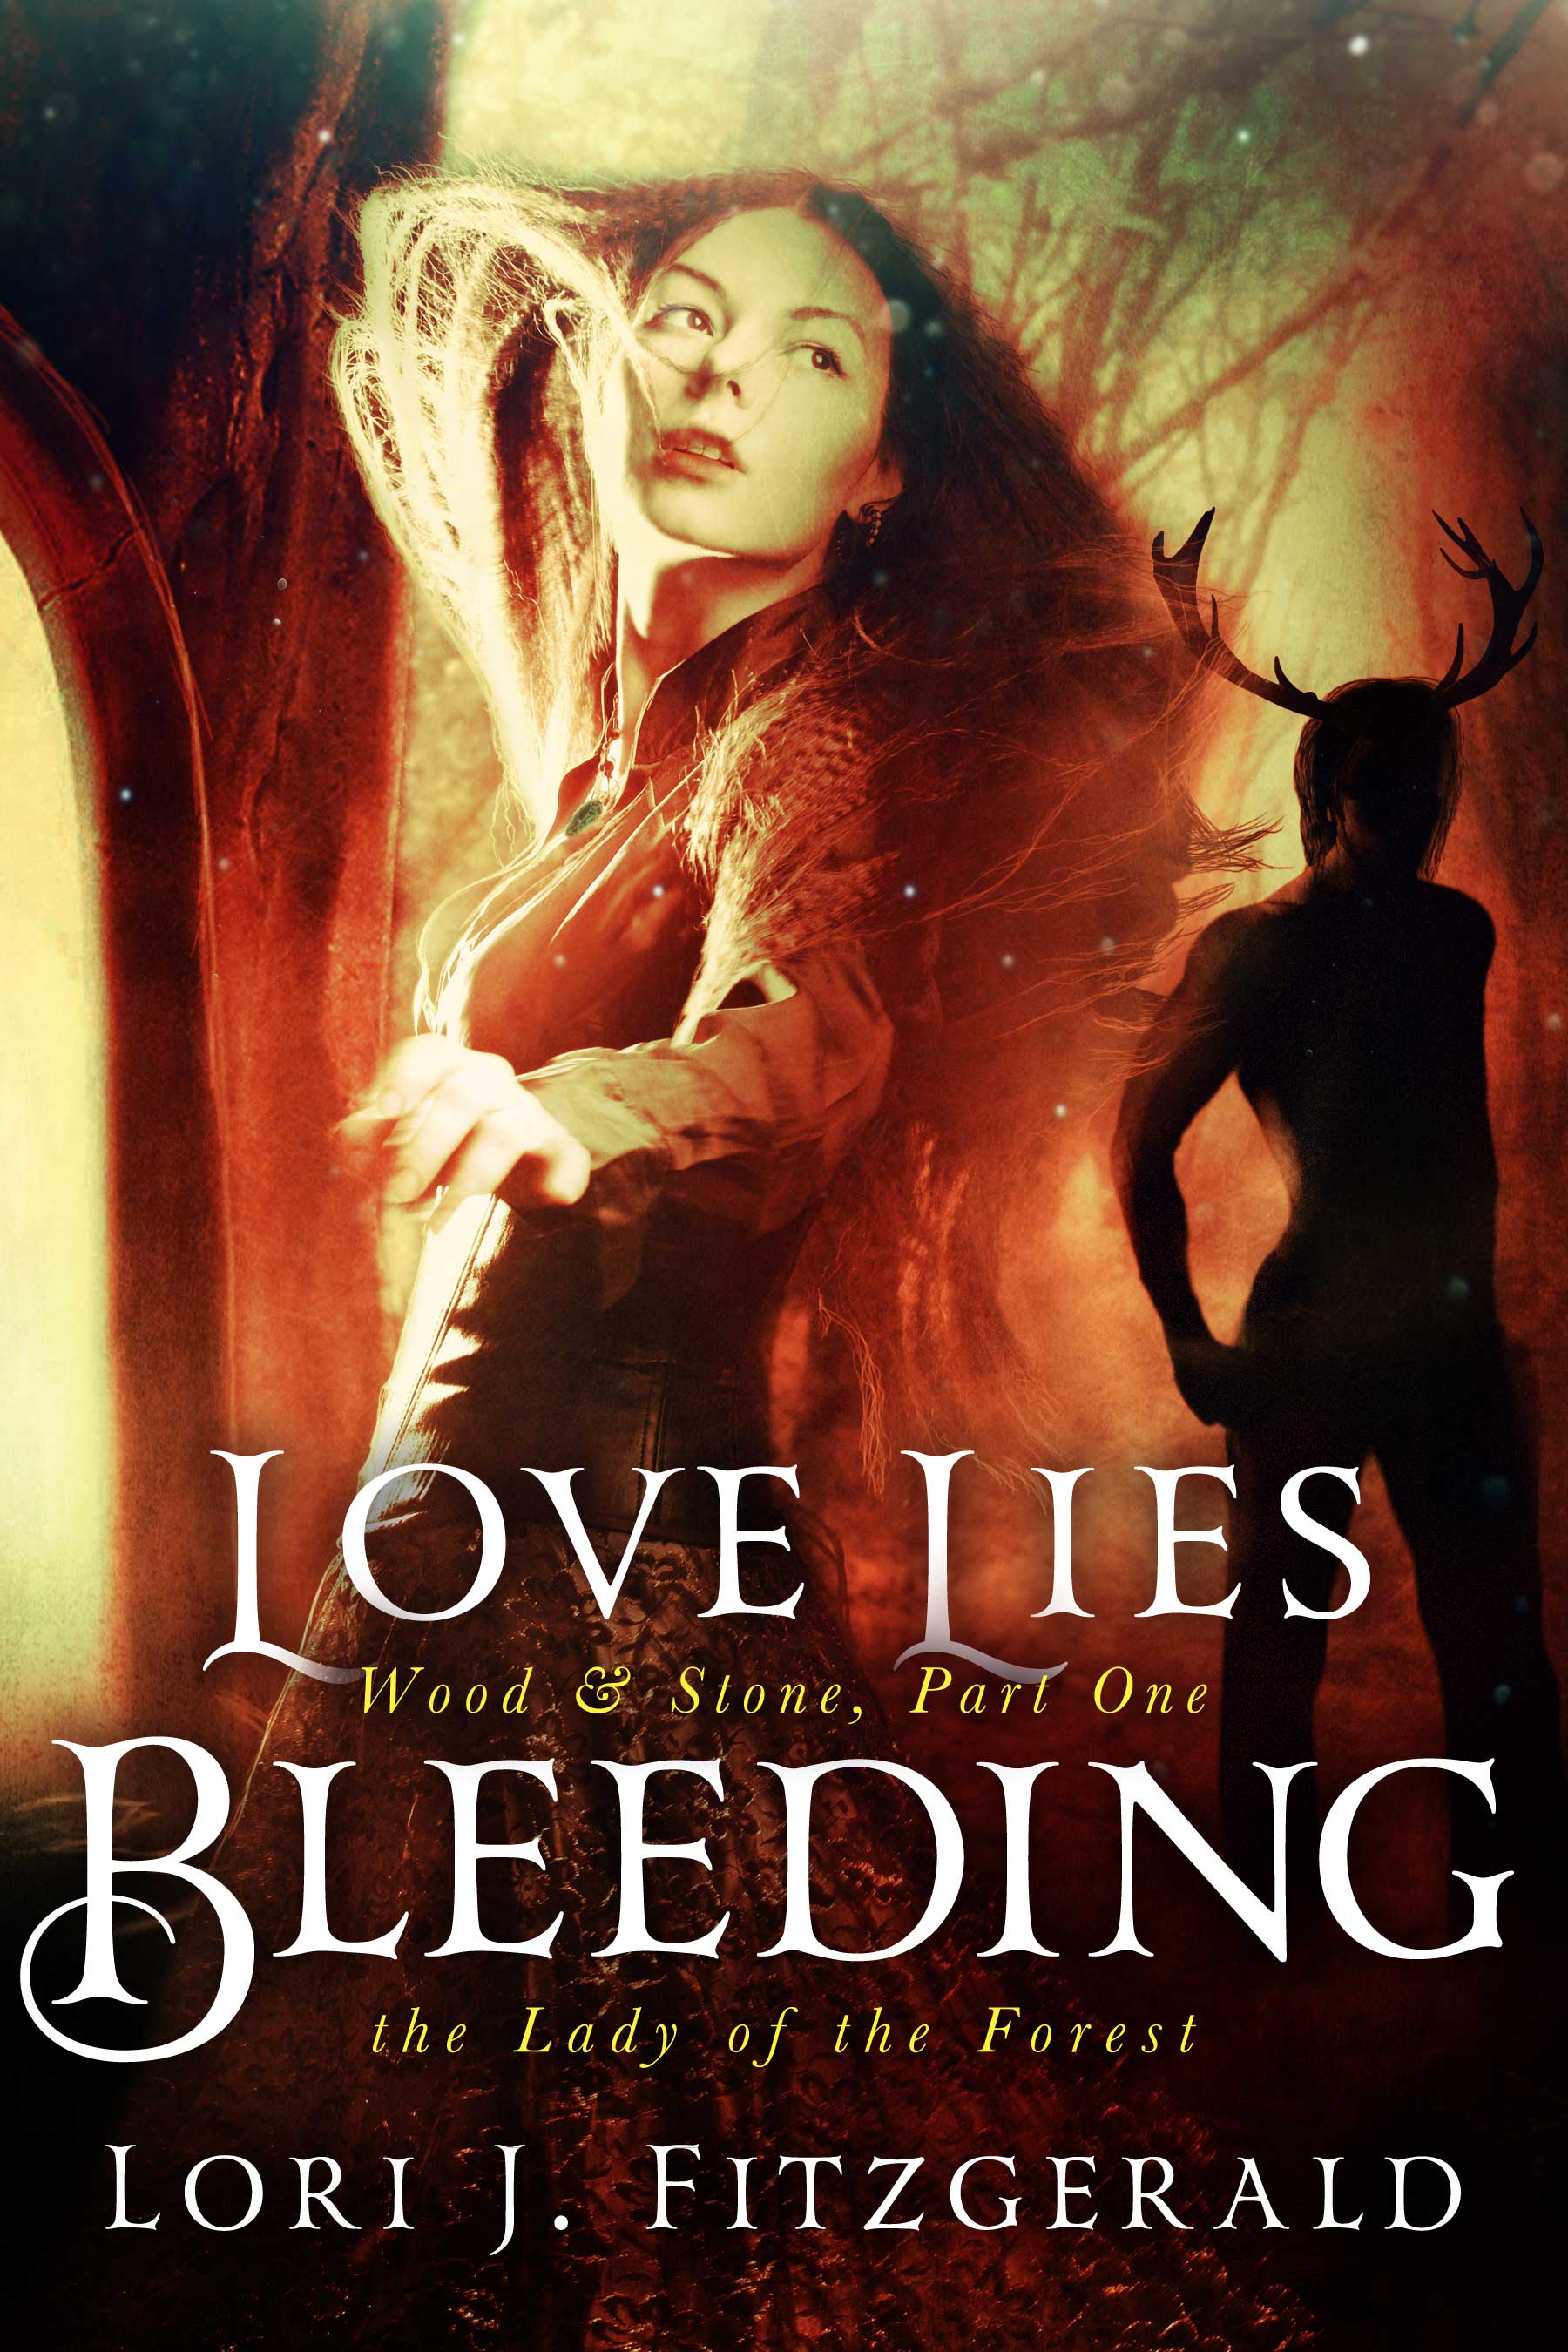 Love Lies Bleeding: The Lady of the Forest, Book One of the Wood & Stone Series Book Cover